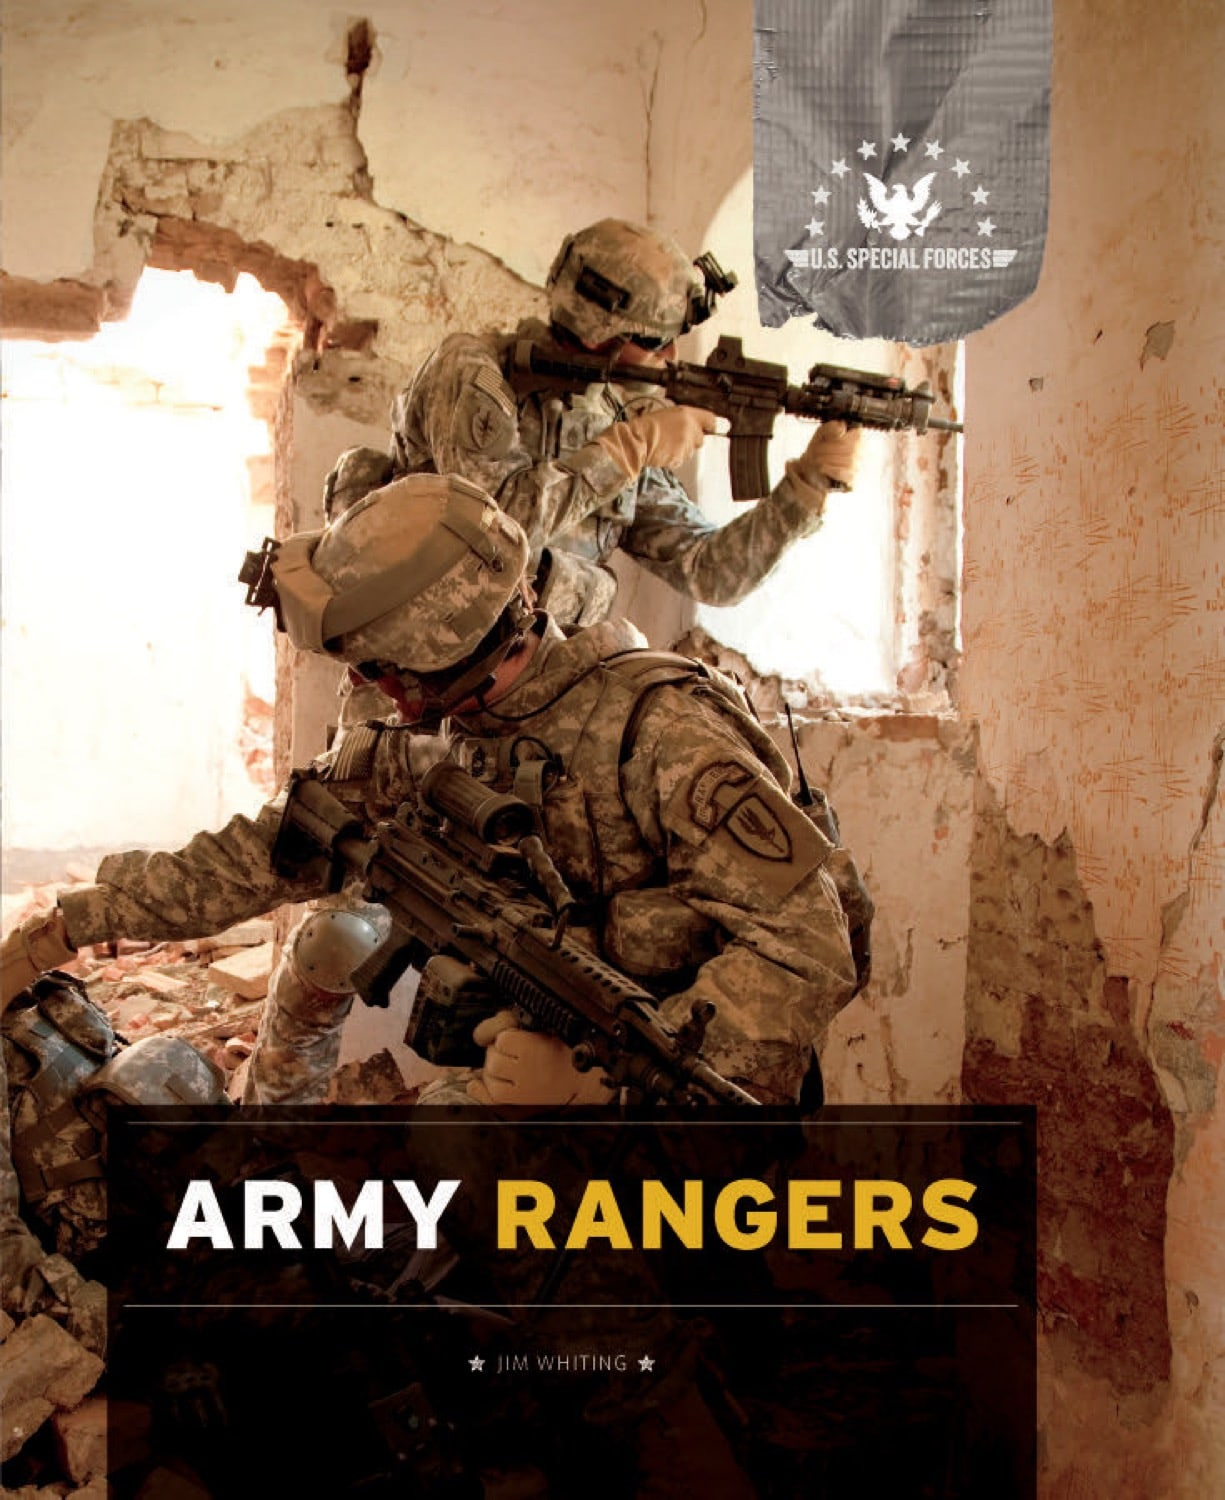 U.S. Special Forces: Army Rangers